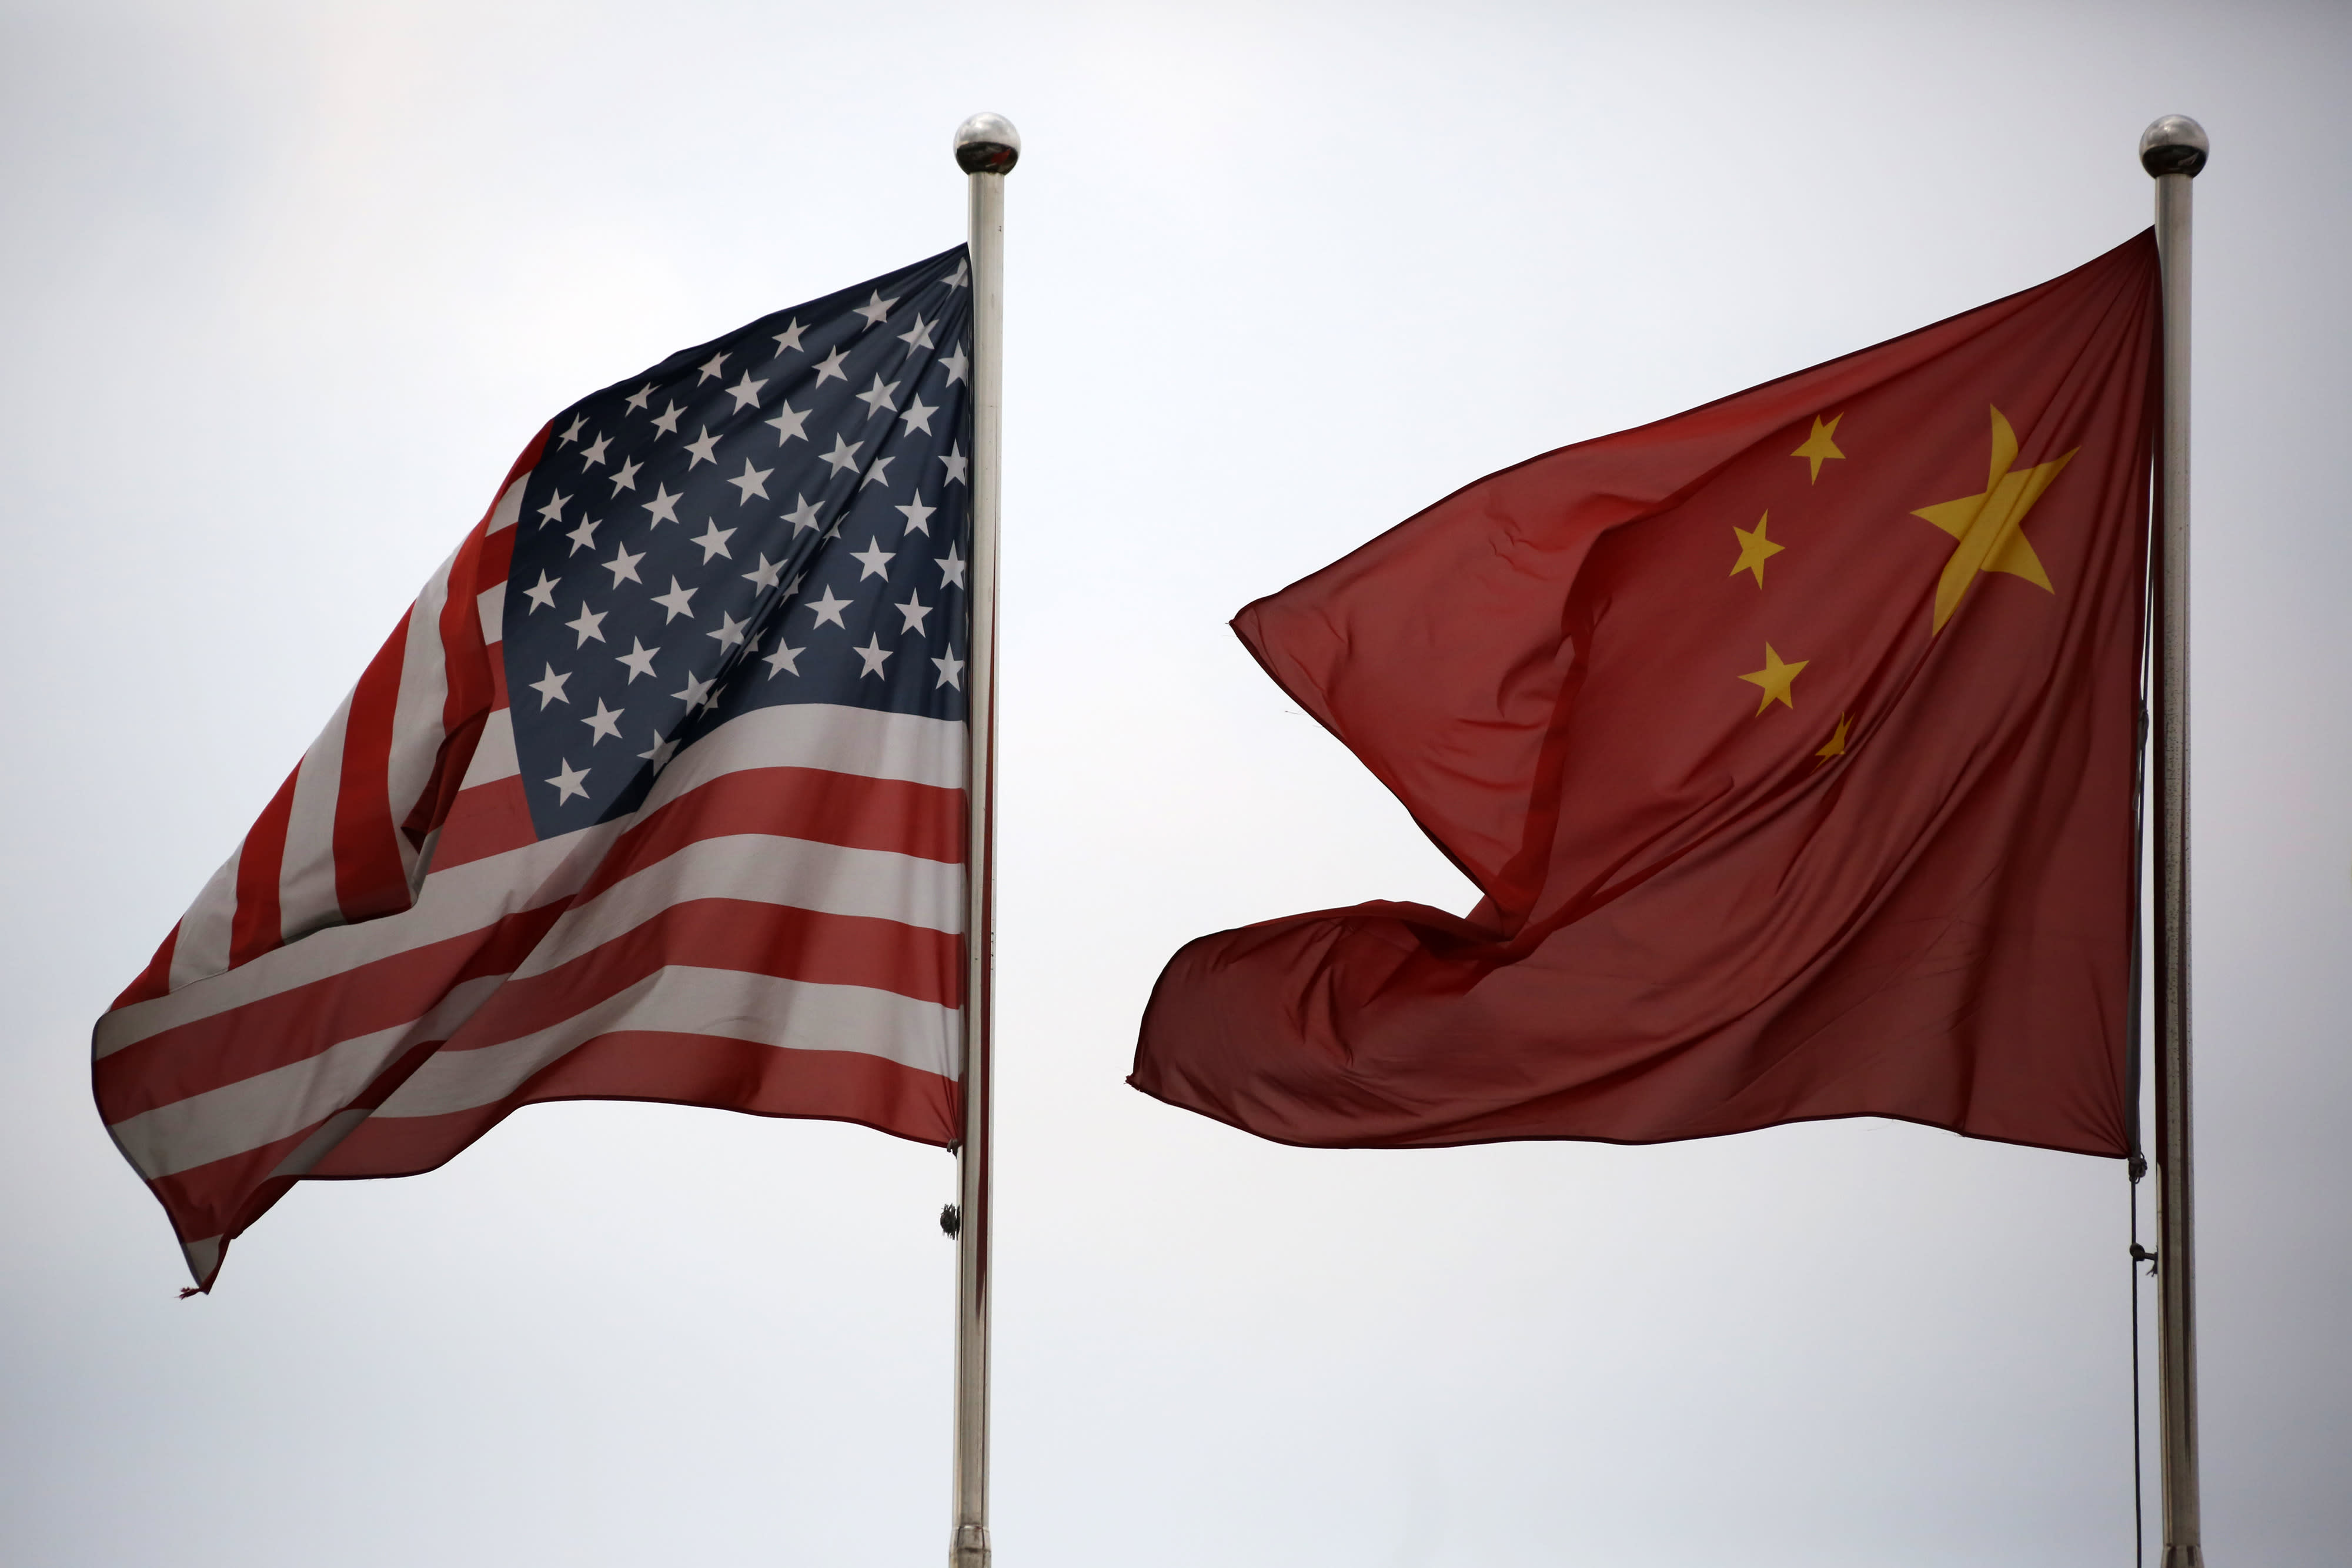 Beijing plans to restrict visas for US visitors with 'anti-China' links